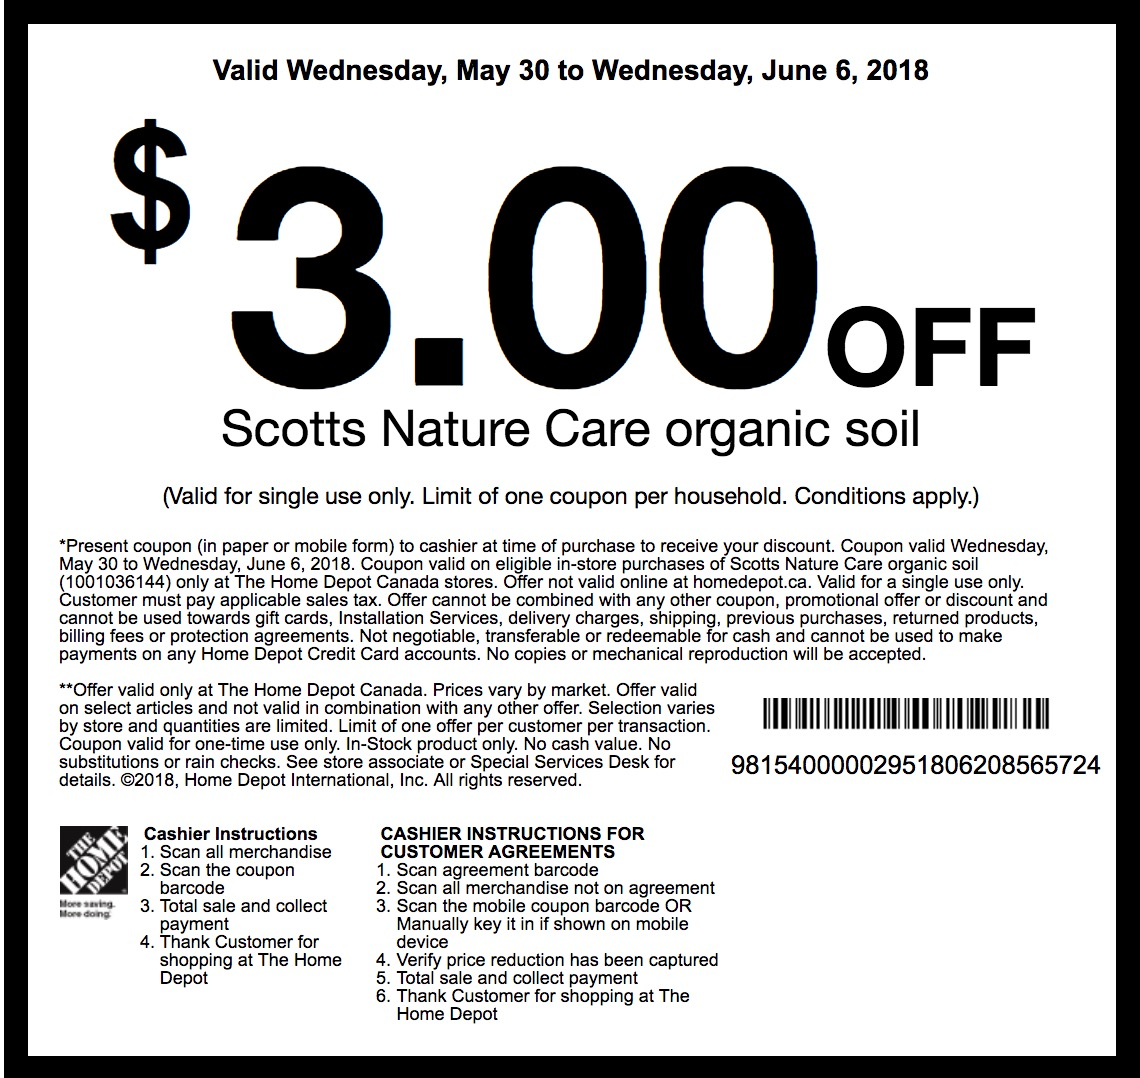 The Home Depot Garden Club New Coupons Save Off Scotts Nature Care Organic Soil Hot